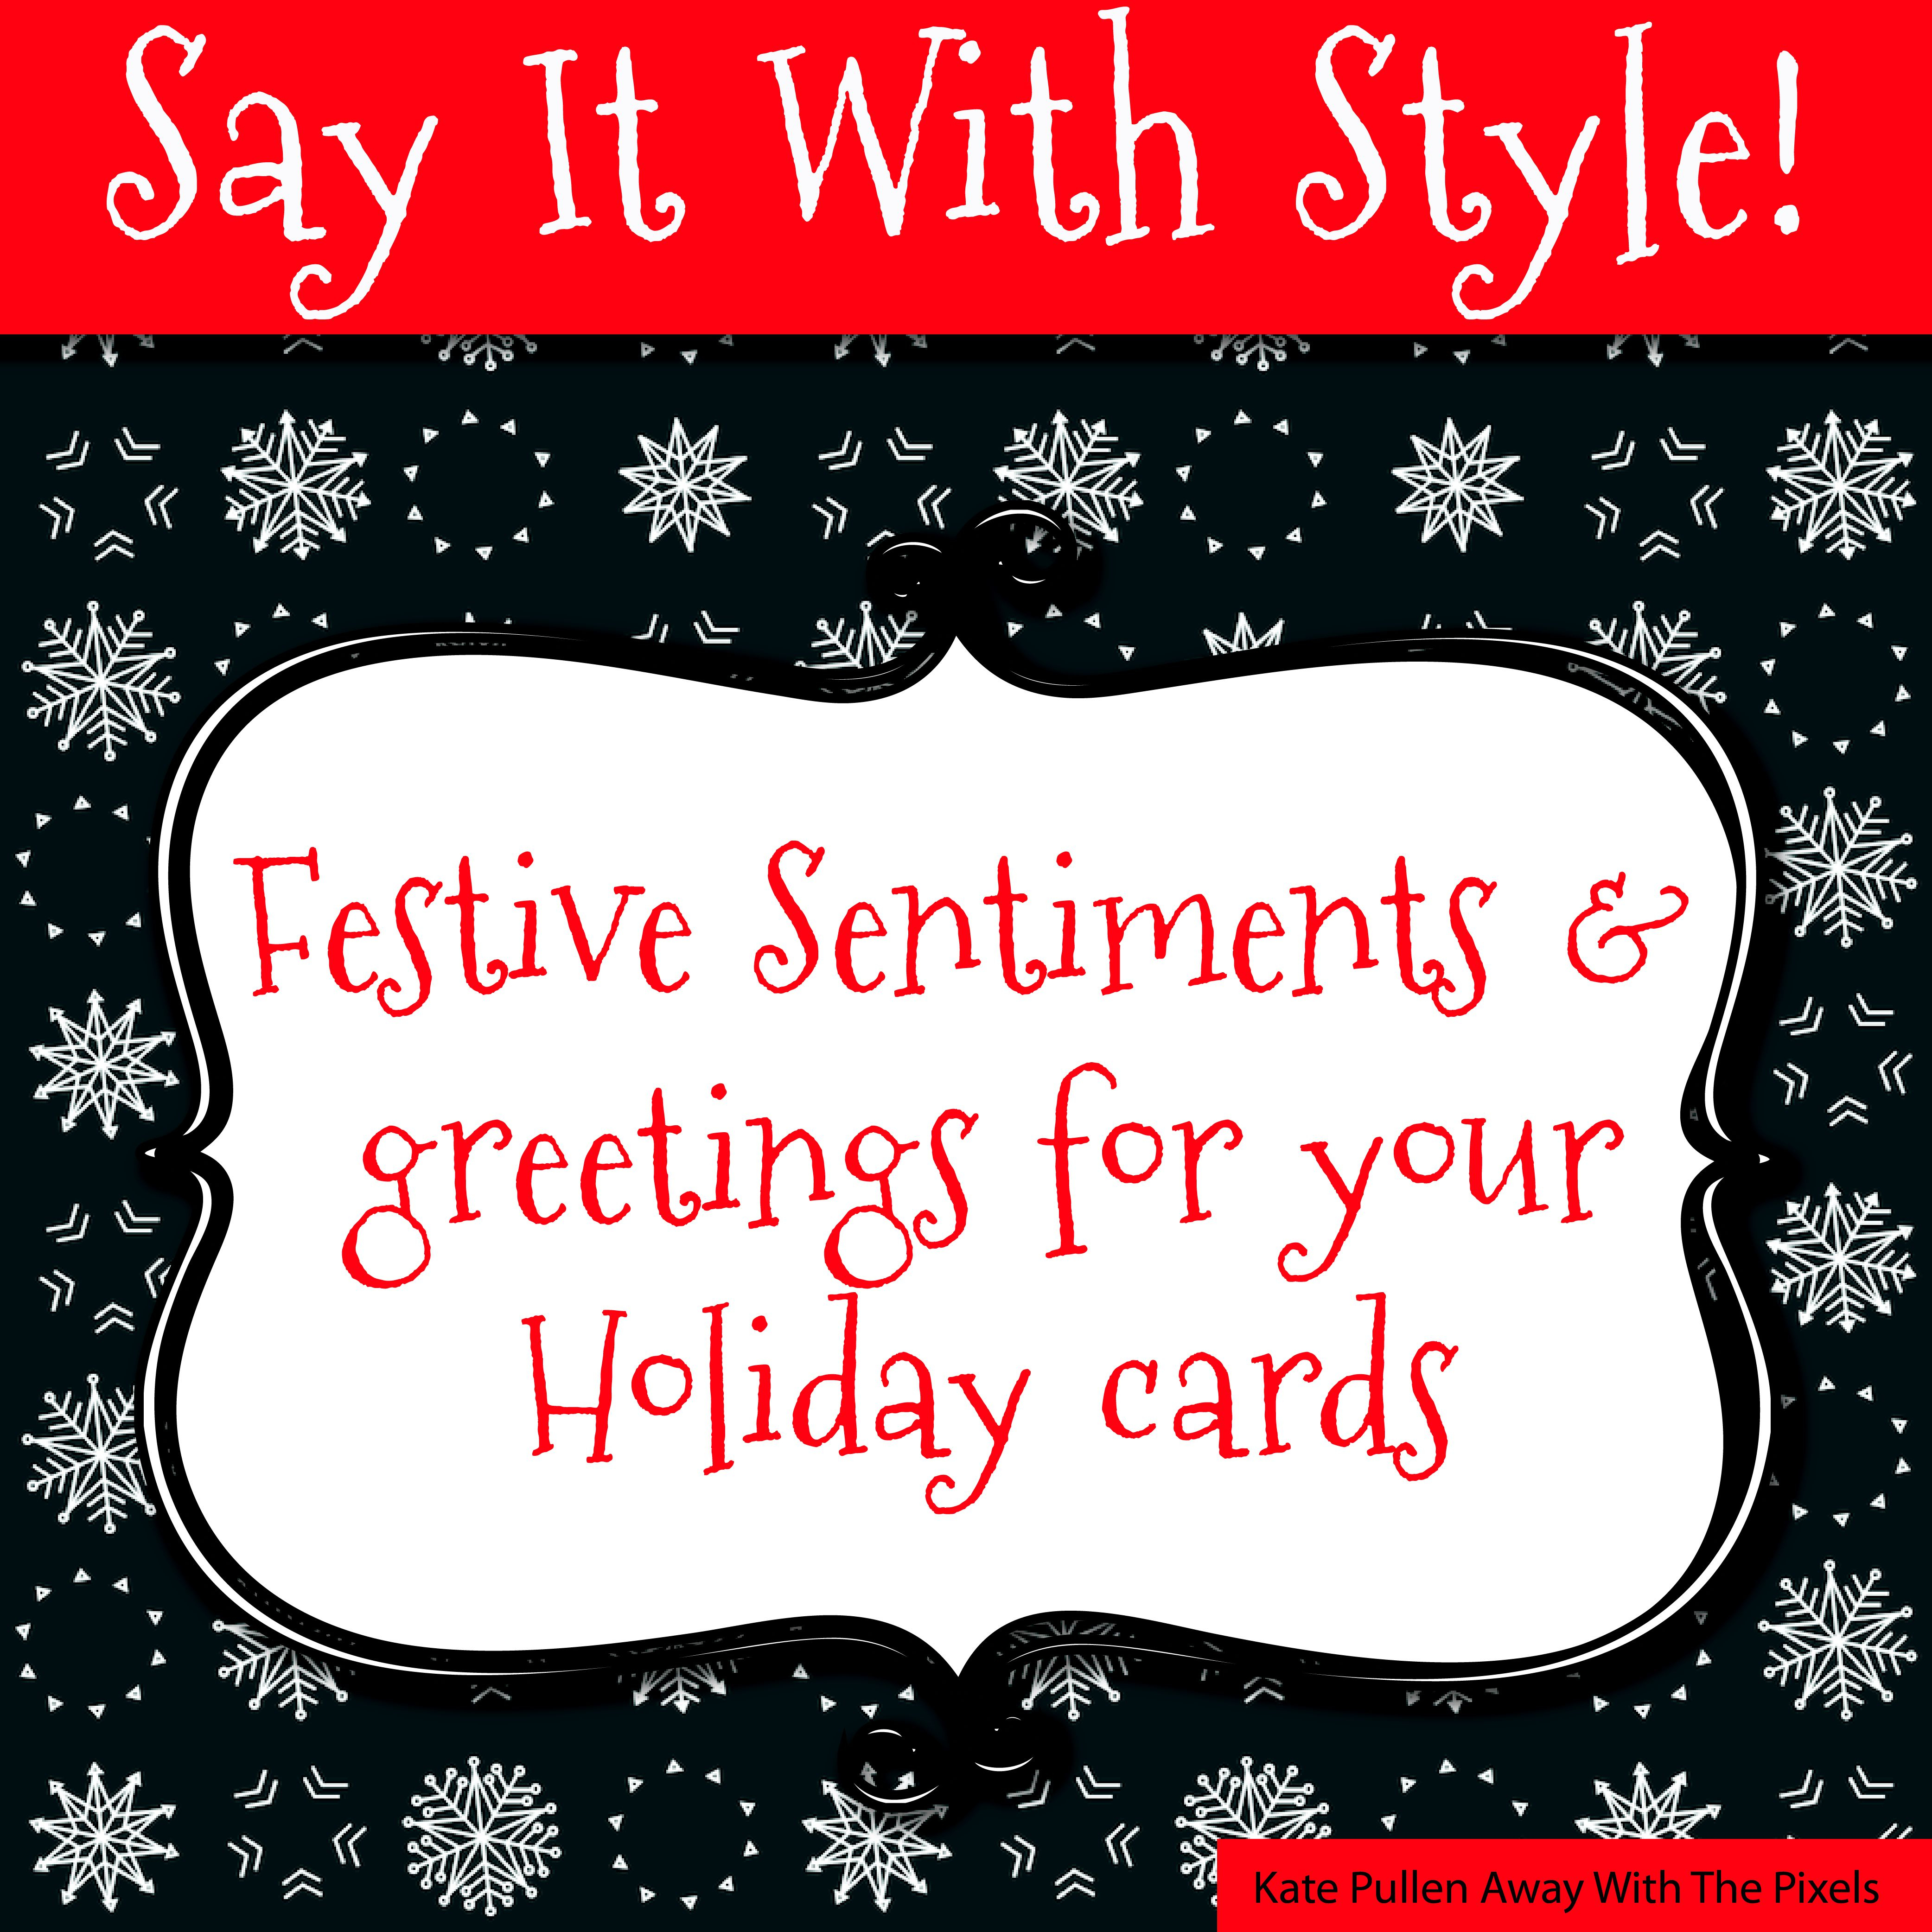 Sentiments And Greetings For Christmas Cards - Free Printable Christmas Cards With Photo Insert